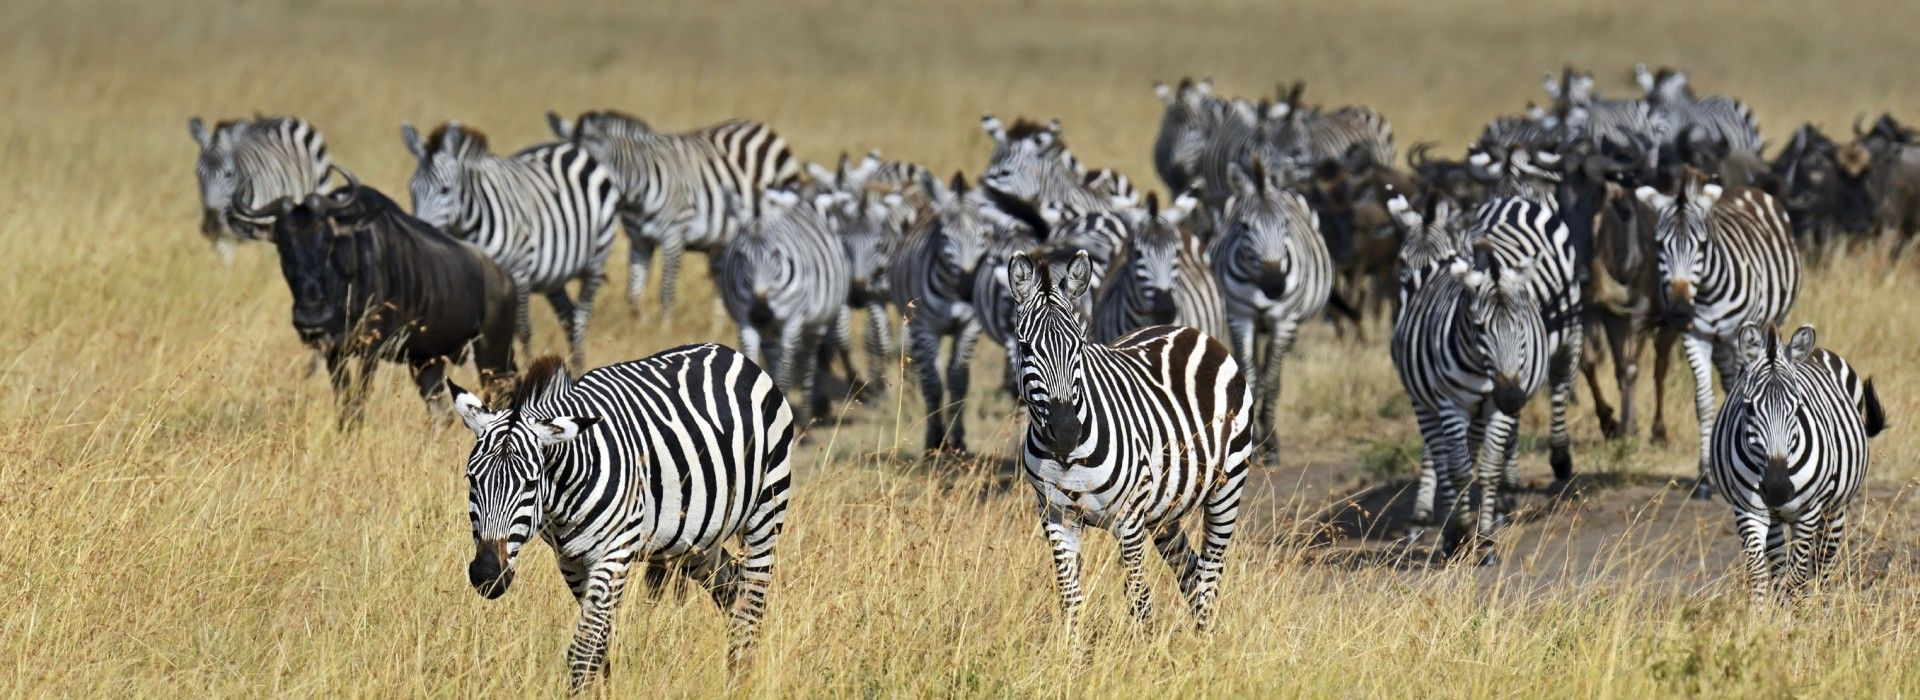 Grant's Zebra and Wildebeests mass migration seen in the Masai Mara National Reserve in Kenya